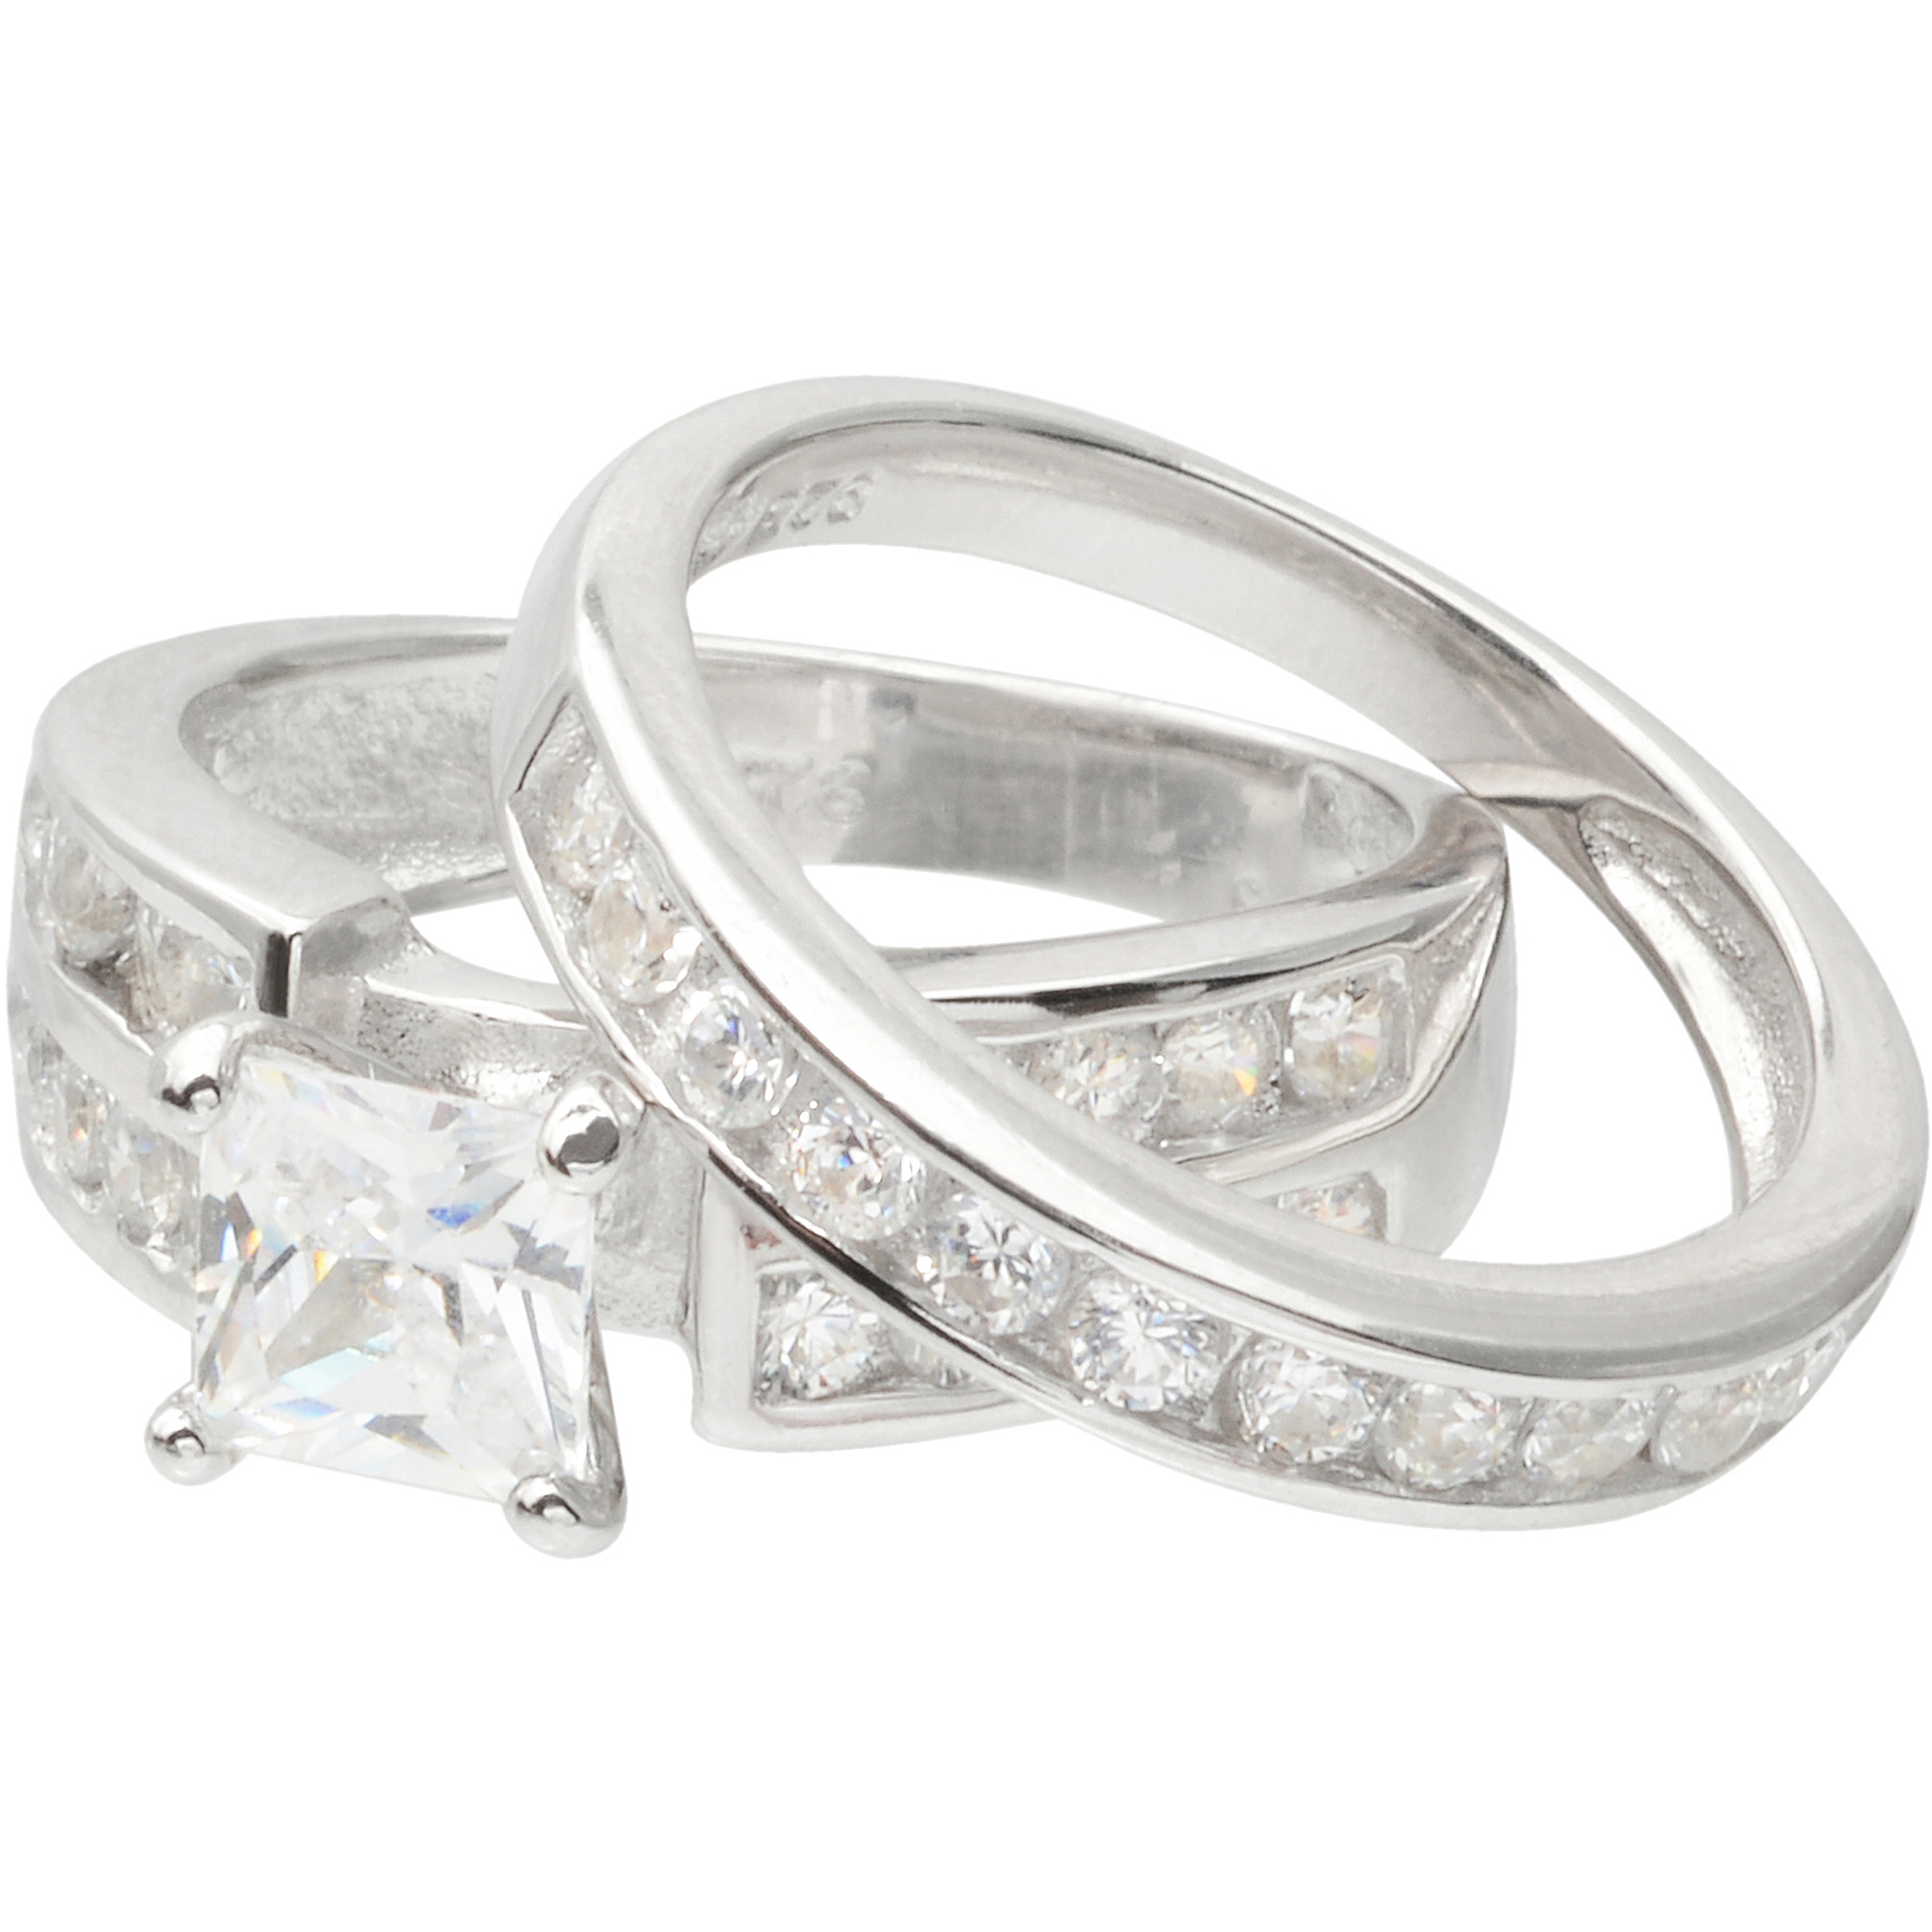 Alexandria Collection Sterling Silver 2-1/4 Carat T.G.W. Round Cubic Zirconia Bridal Ring Set